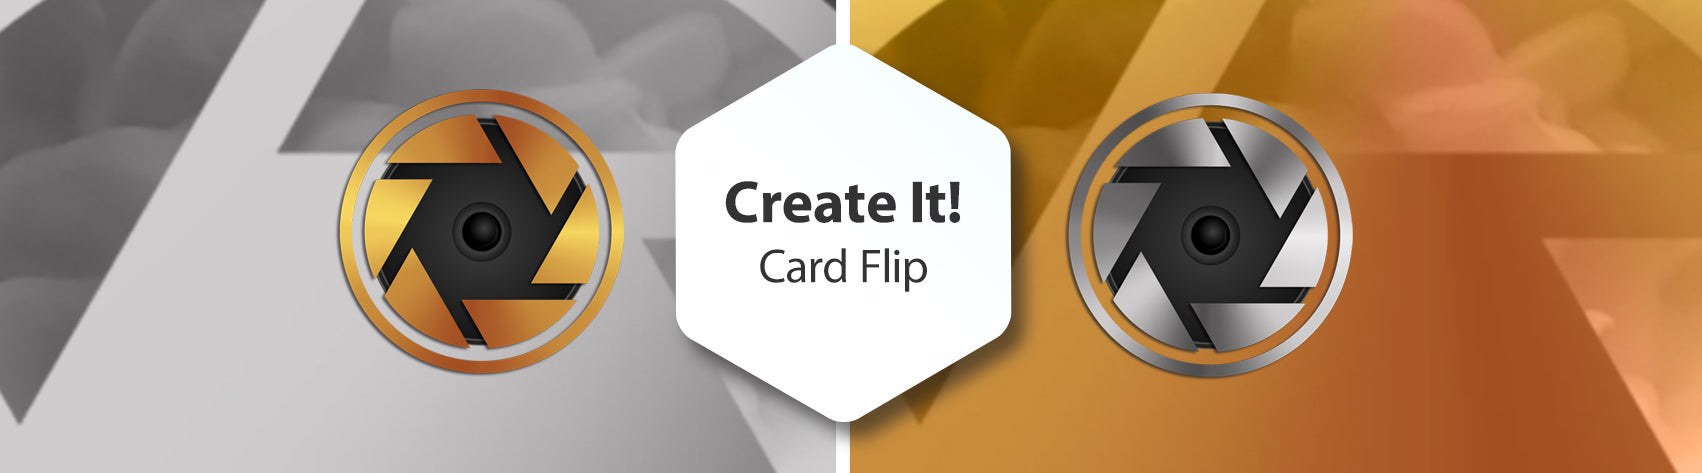 Create It! Card Flip